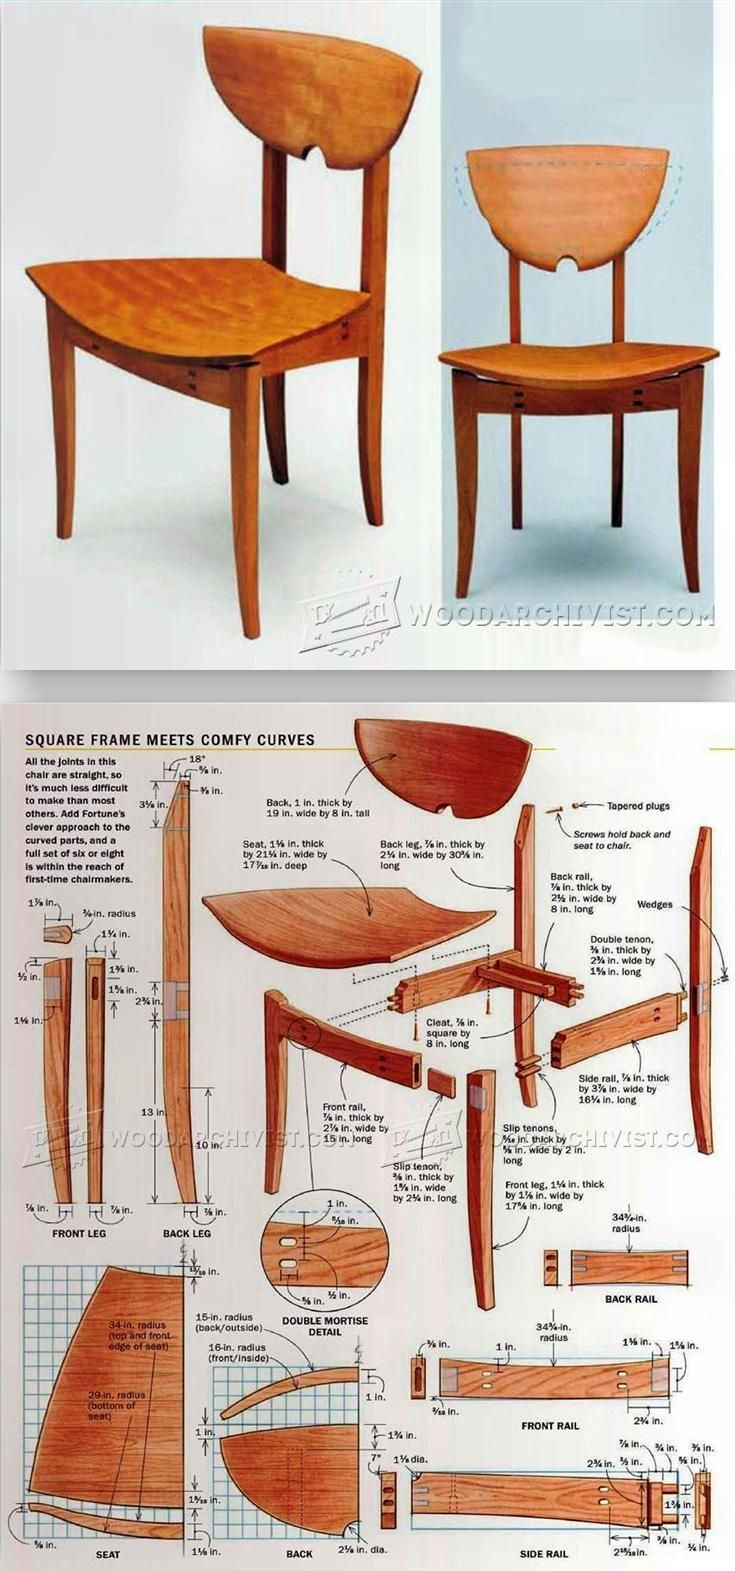 Cafe Style Chair Plans - Furniture Plans and Projects | WoodArchivist.com